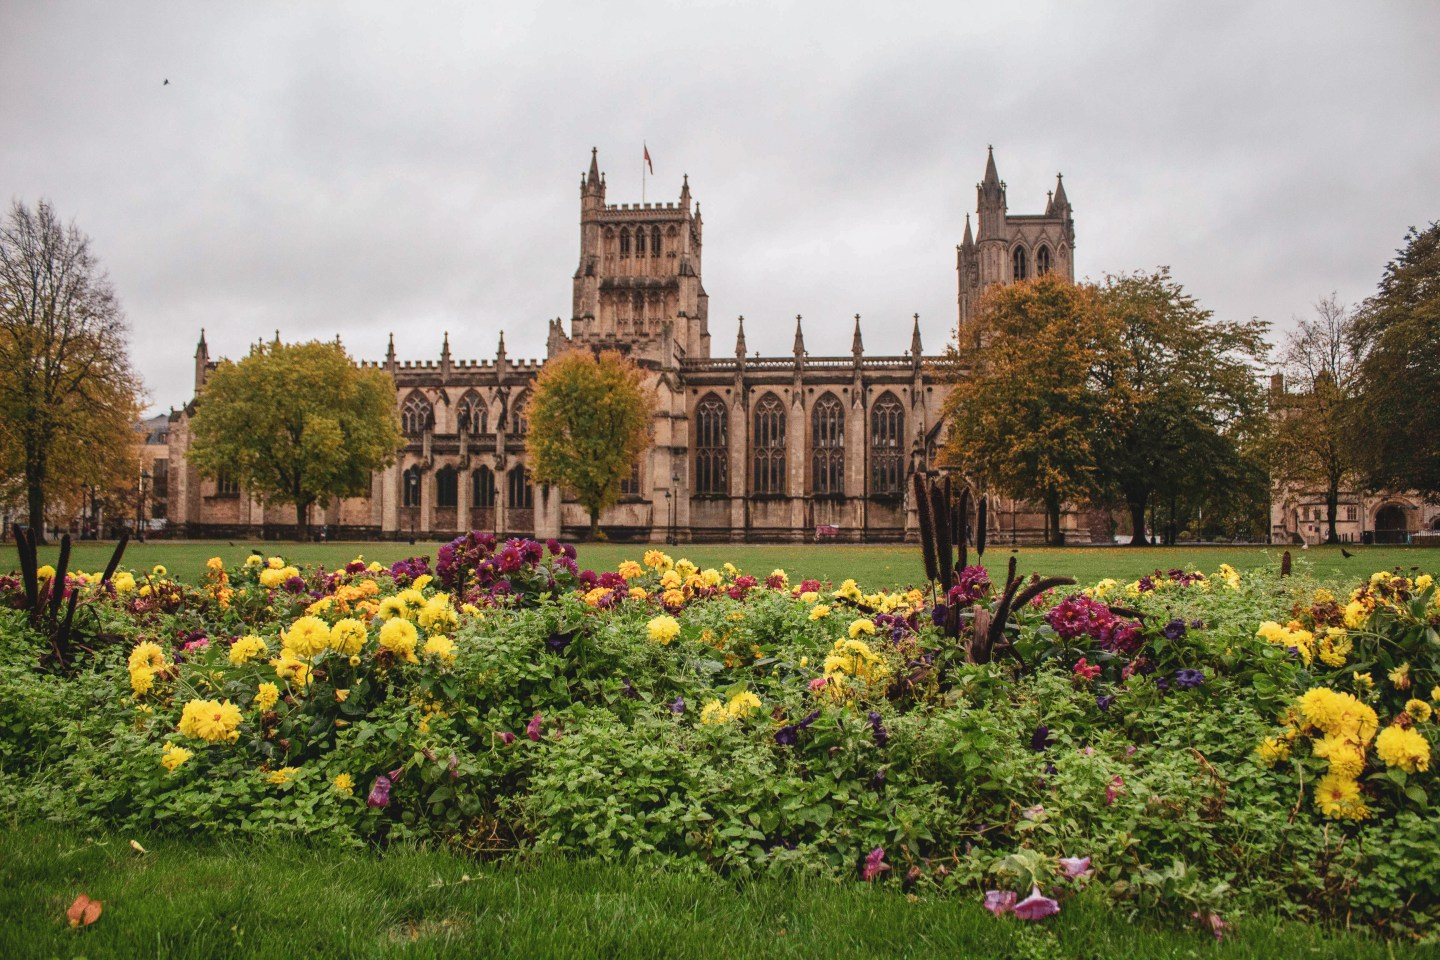 Visit Bristol In One Day Trip - Explore Bristol's harbourside, famous landmarks, and beautiful countryside for an immersive taste of history, world exploration, and engineering! College Green and Bristol Cathedral make the perfect stopping idea.